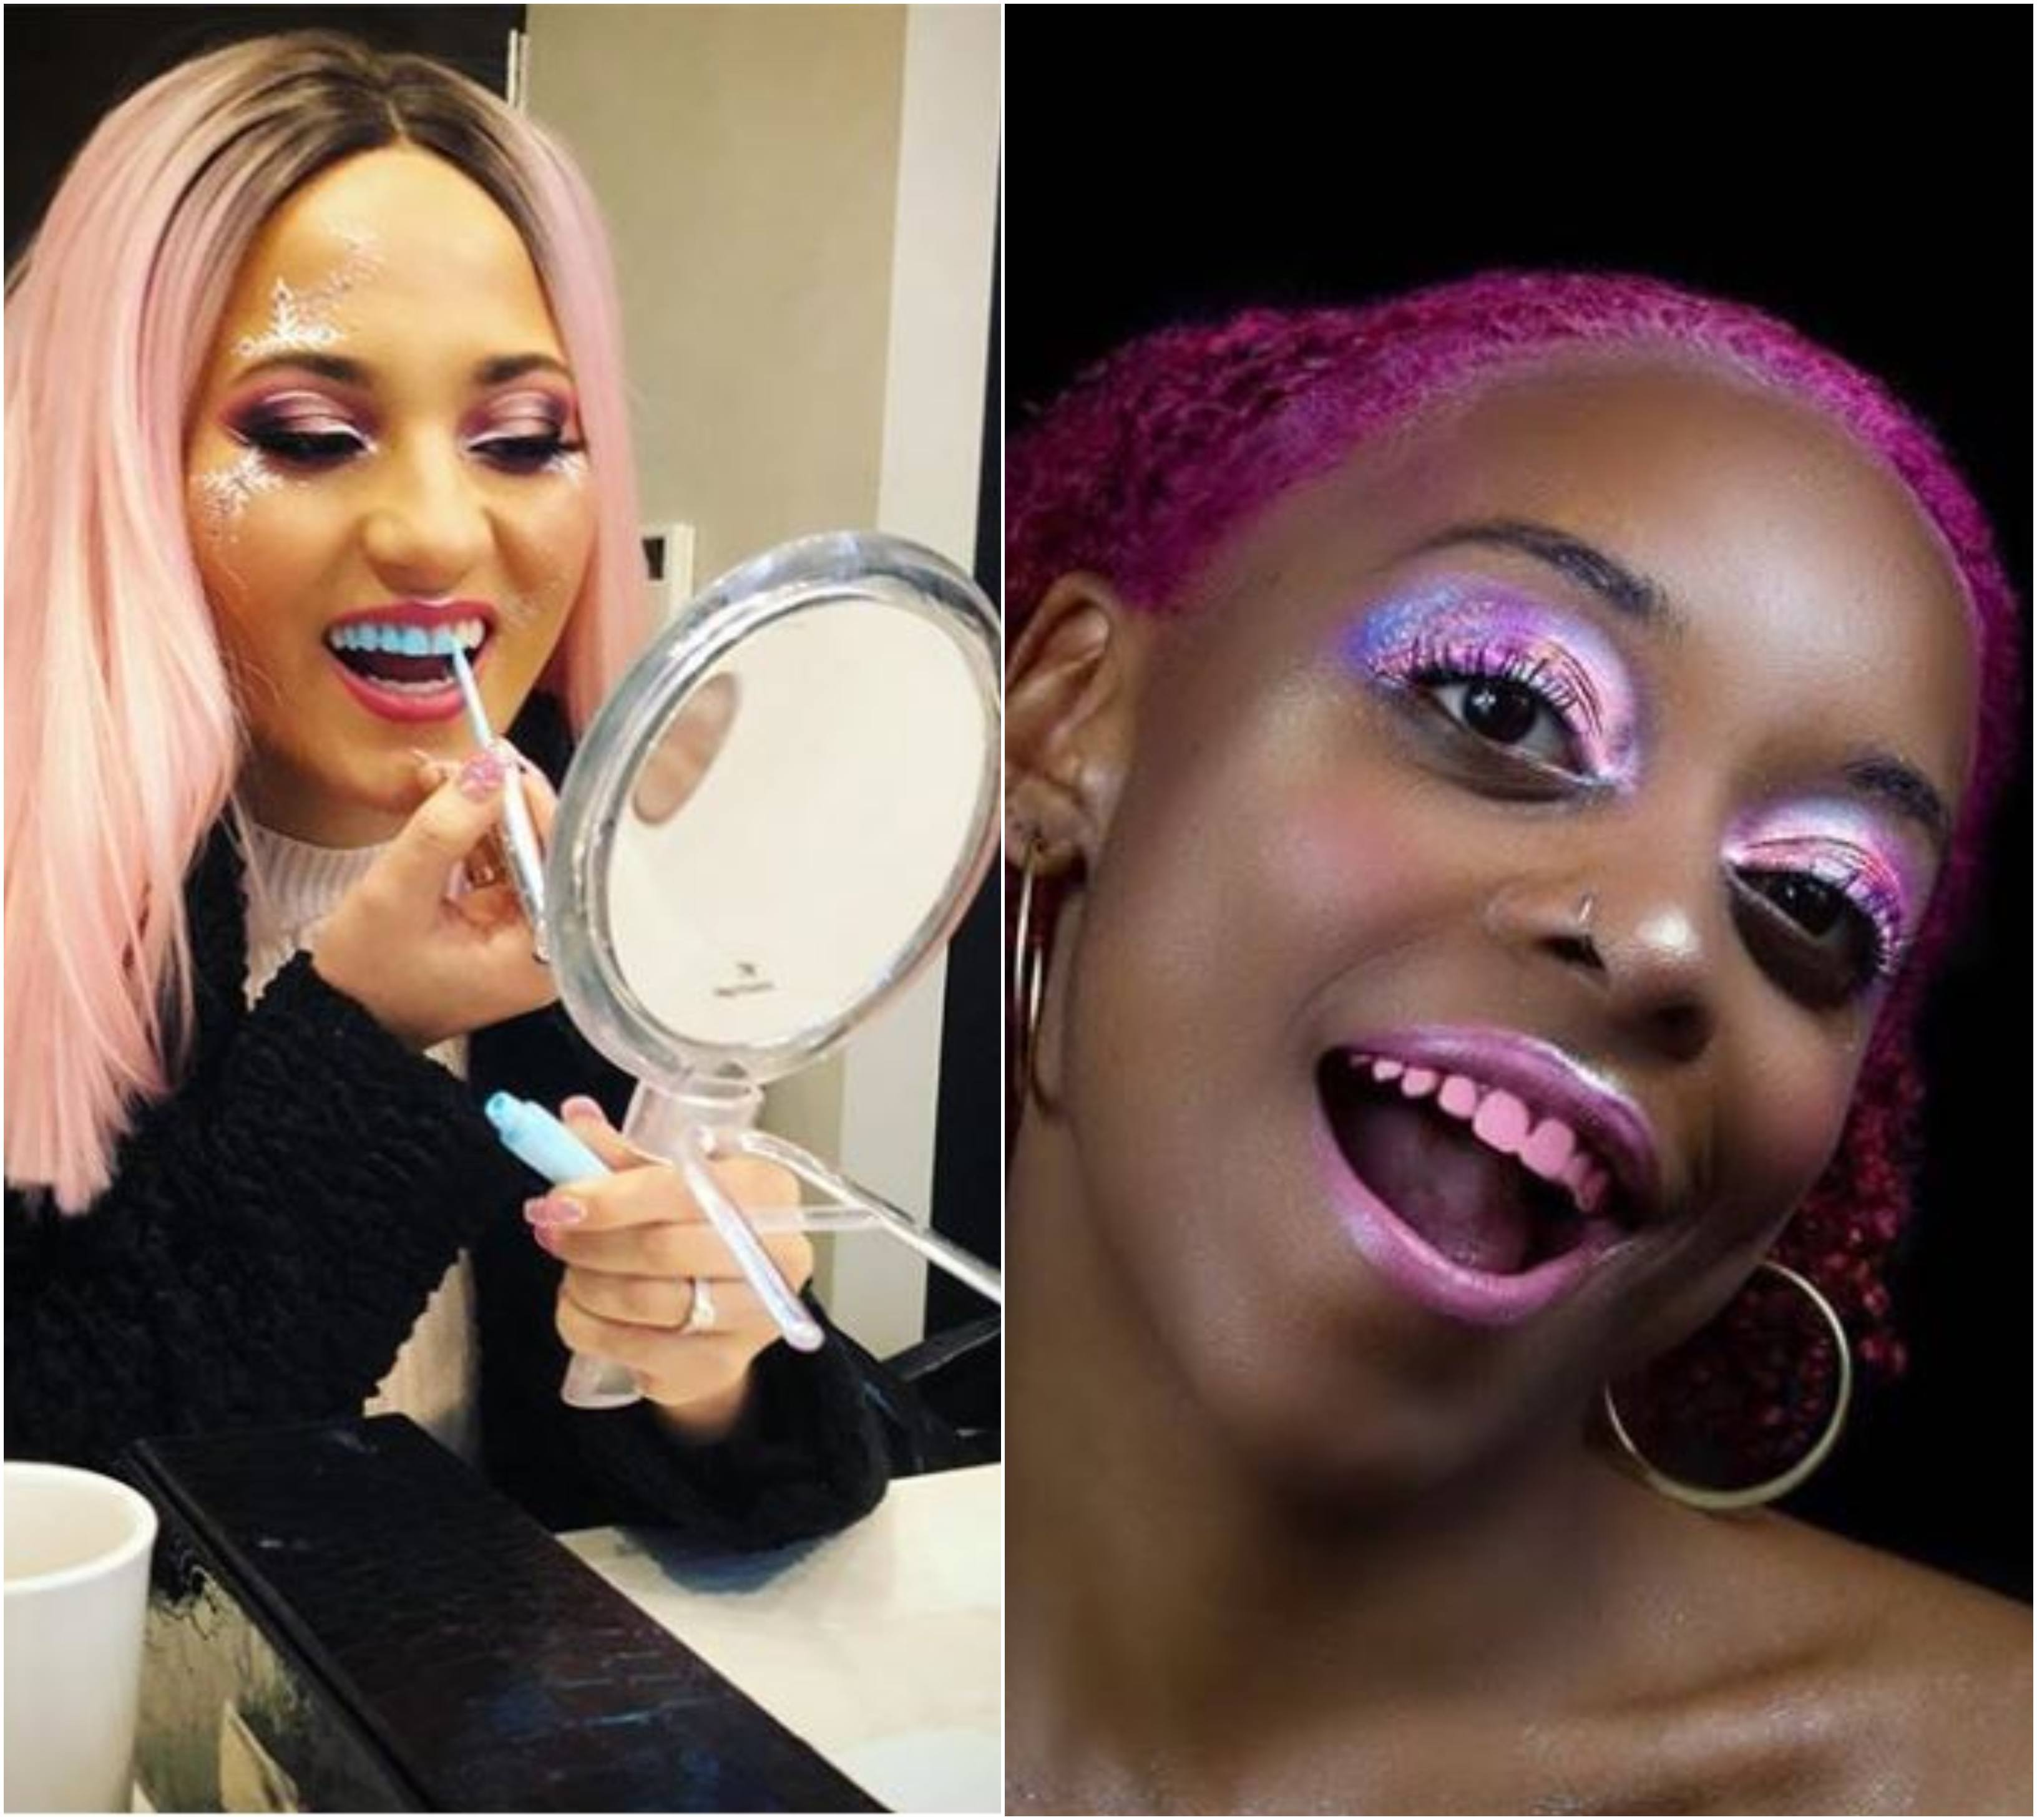 rainbow-teeth-trend-pics